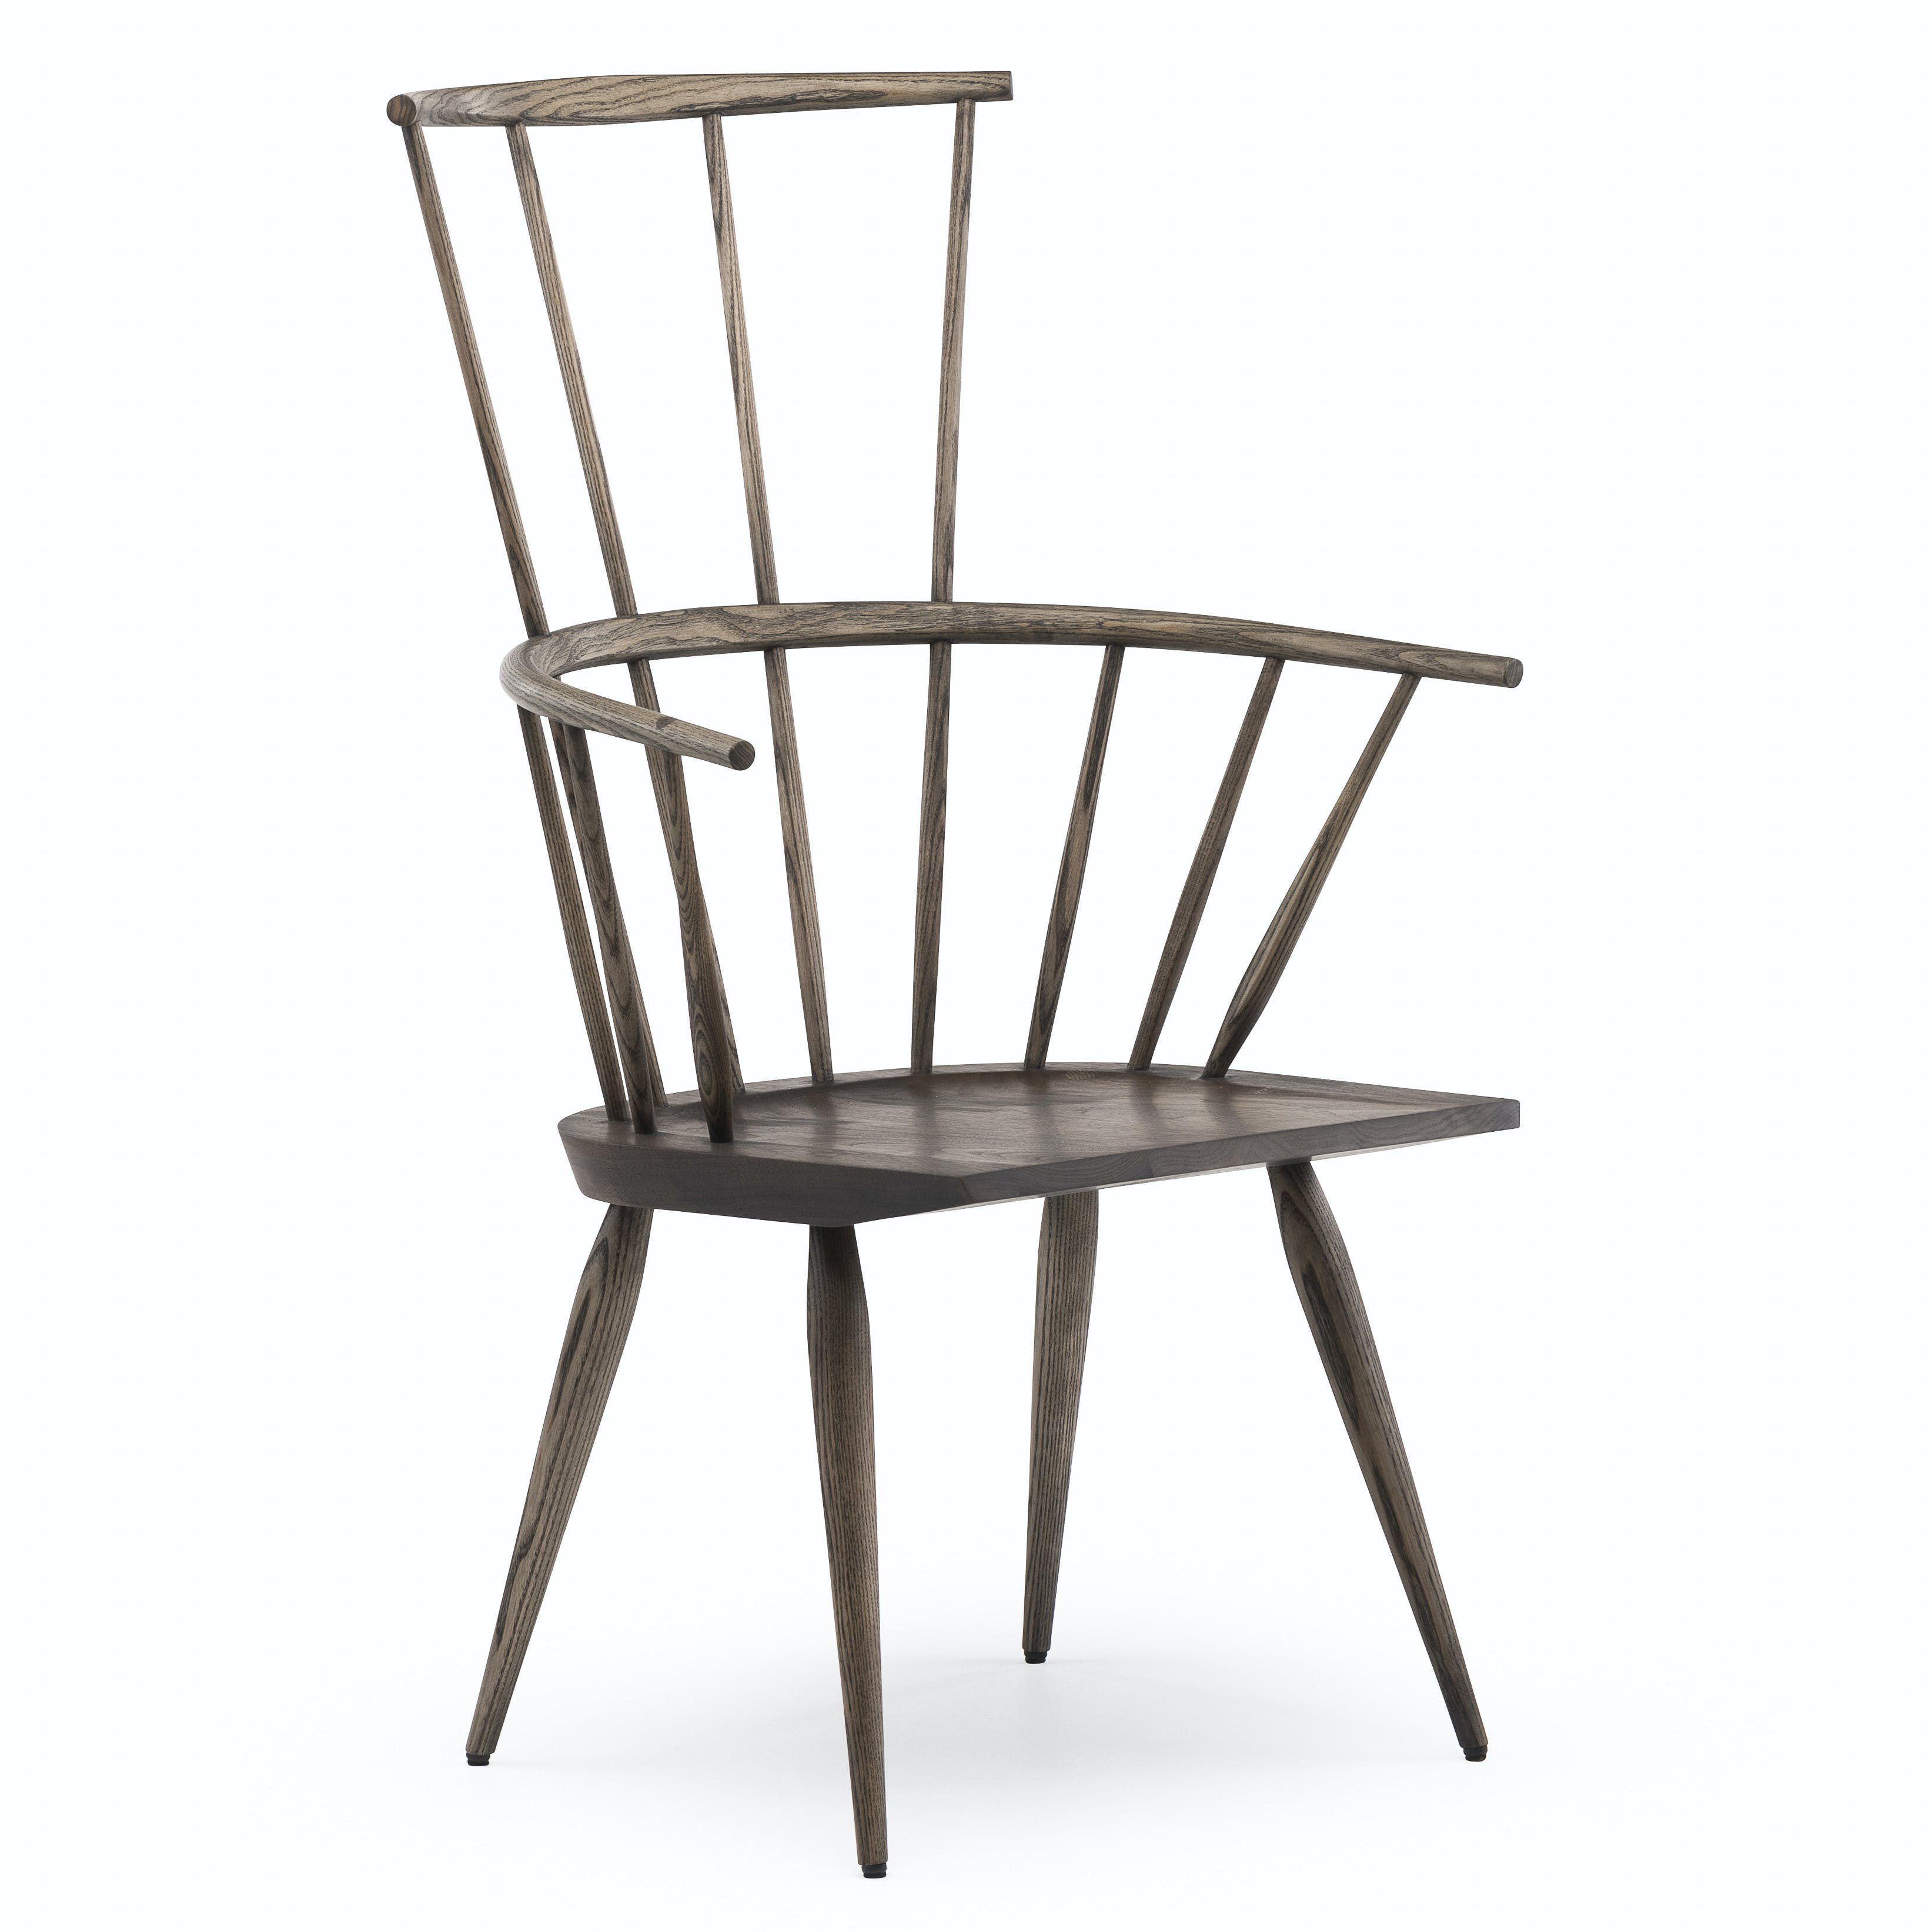 359 Kimble Windsor Chair By Matthew Hilton In Black Oiled Walnut And Ash Whitebkgrnd